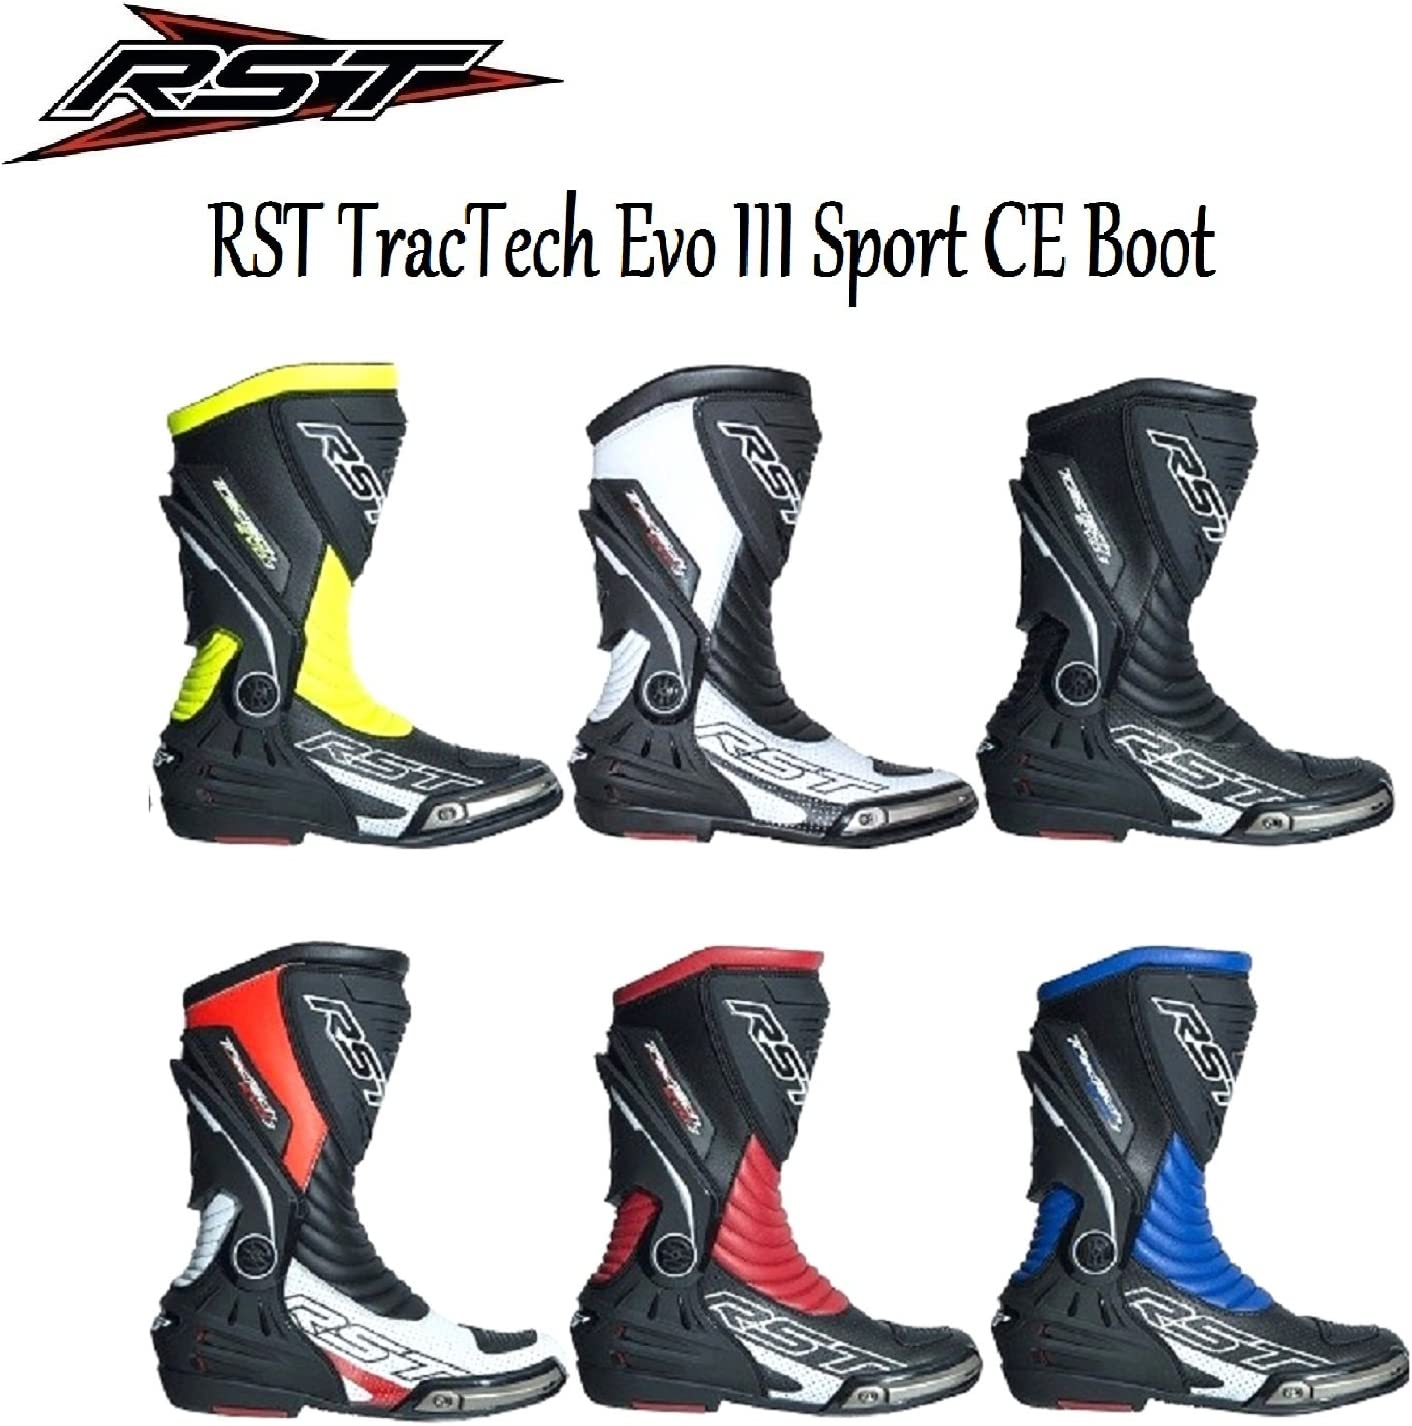 RST 2101 TRACTECH EVO III ADULT SPORTS CE MOTORCYCLE BOOTS New 2018 Unisex Motorbike Motocross Quad ATV Moto GP On-Road Track Racing Touring Armour Long Boots